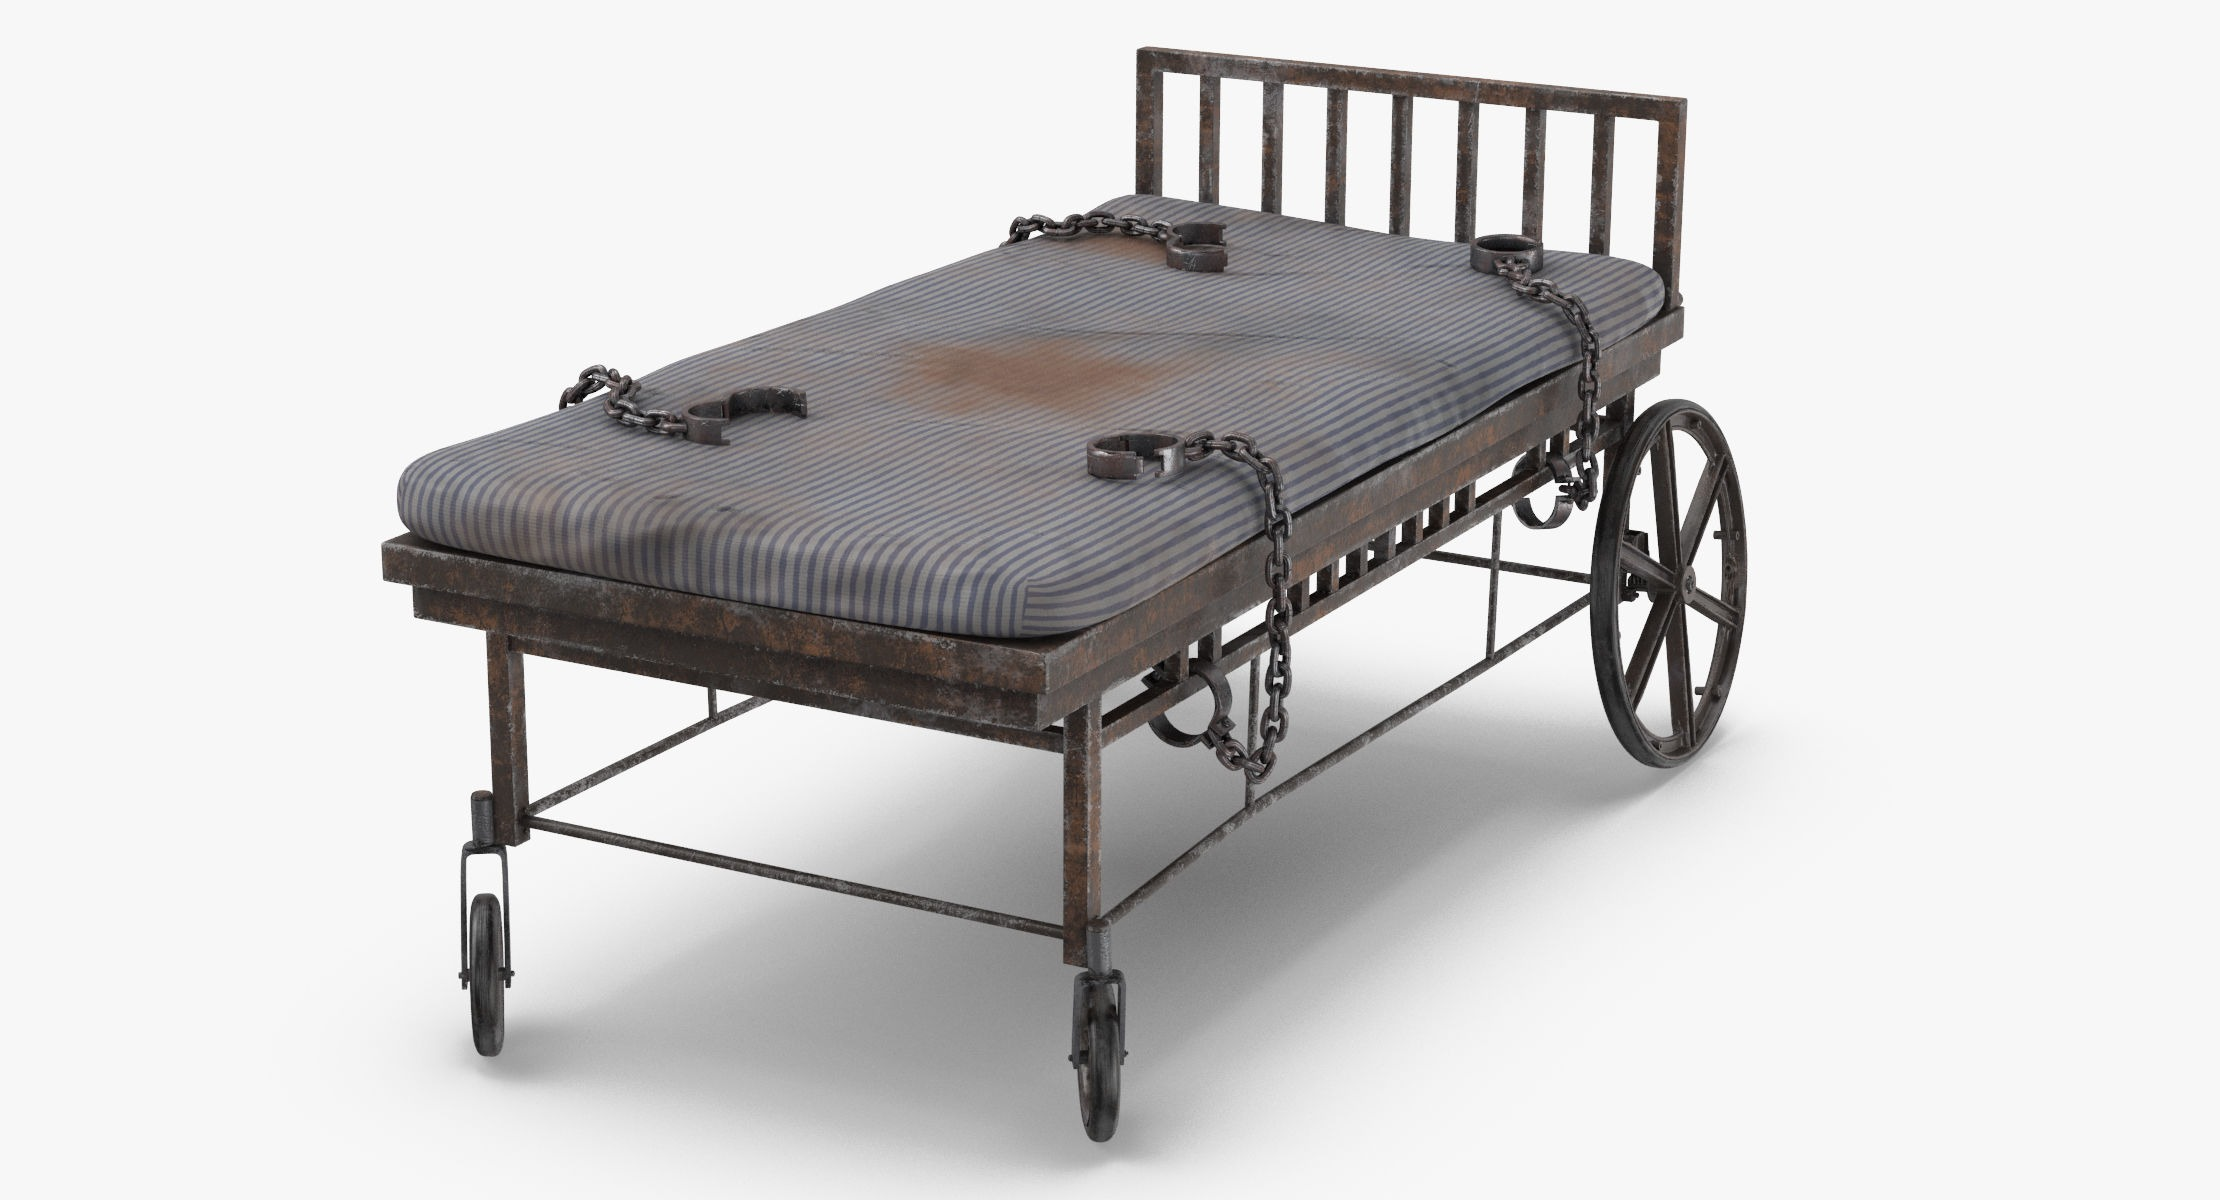 Asylum Bed with Restraints - reel 1